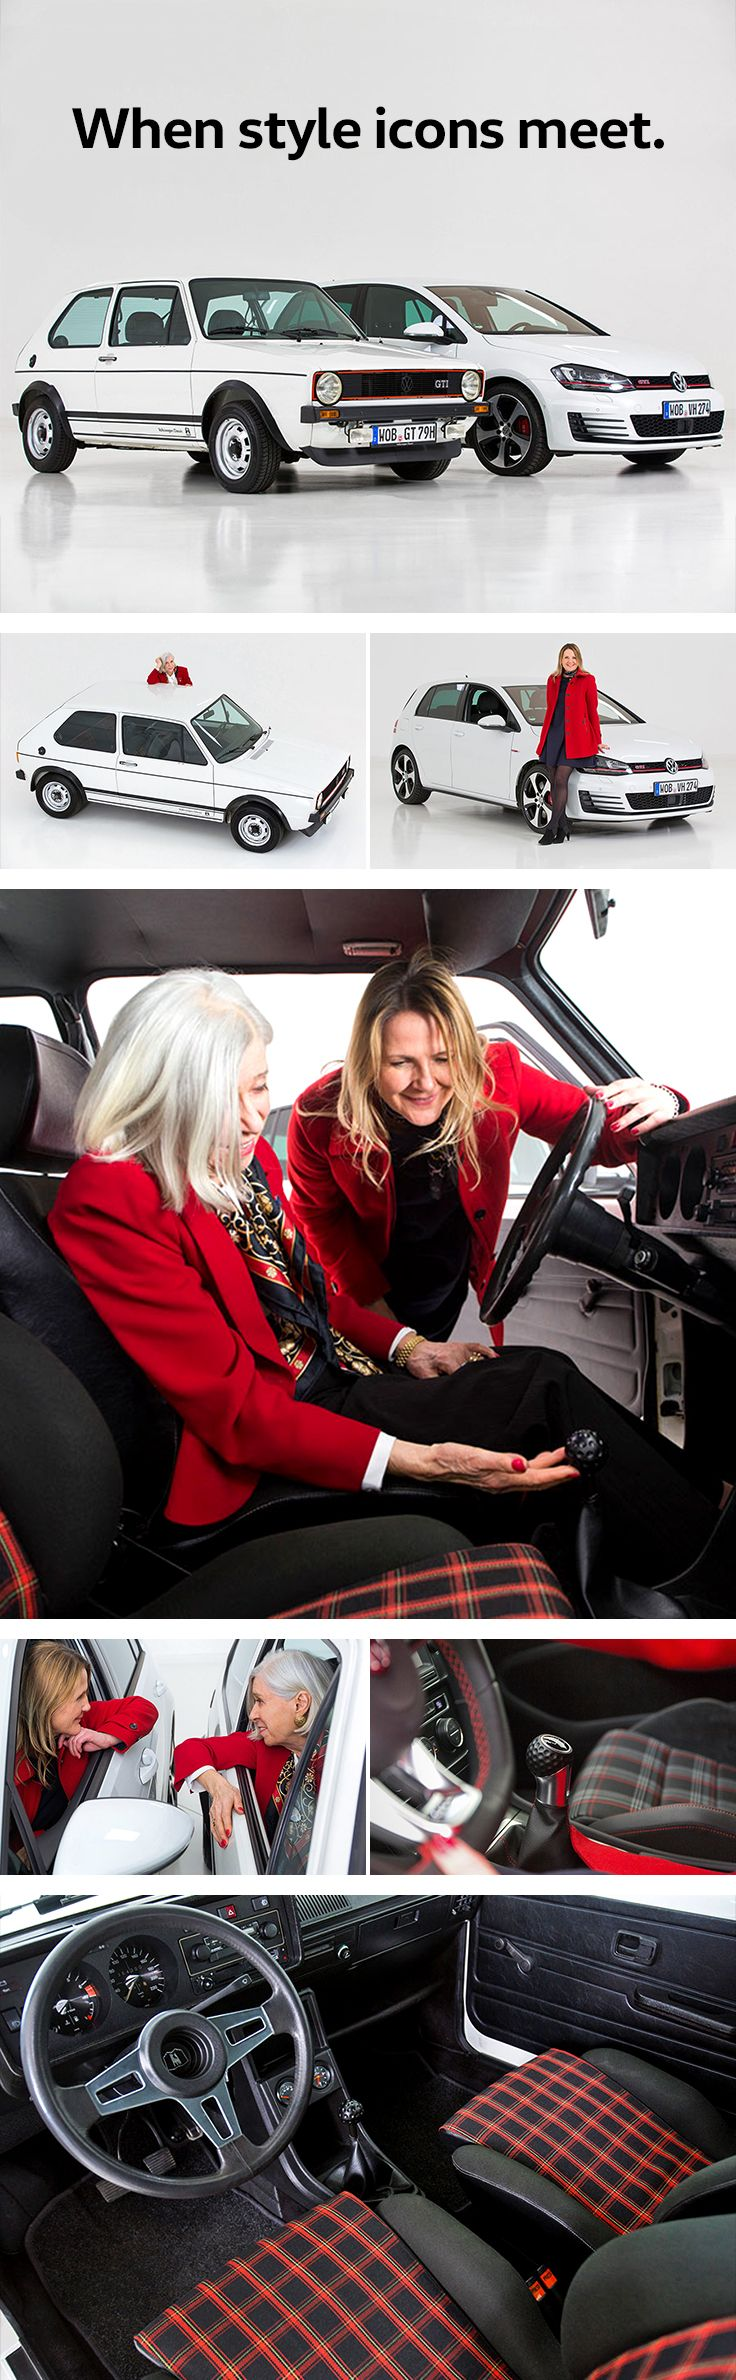 In the context of the celebrations of the 40th anniversary of the Golf GTI, Gunhild Liljequist and Manuela Joosten met for the first time. Both women have had a huge impact on the interior designs of different generations of Volkswagen's most famous model. While Liljequist helped to design the interior of the very first GTI, Joosten worked on that of the latest Golf GTI VII.